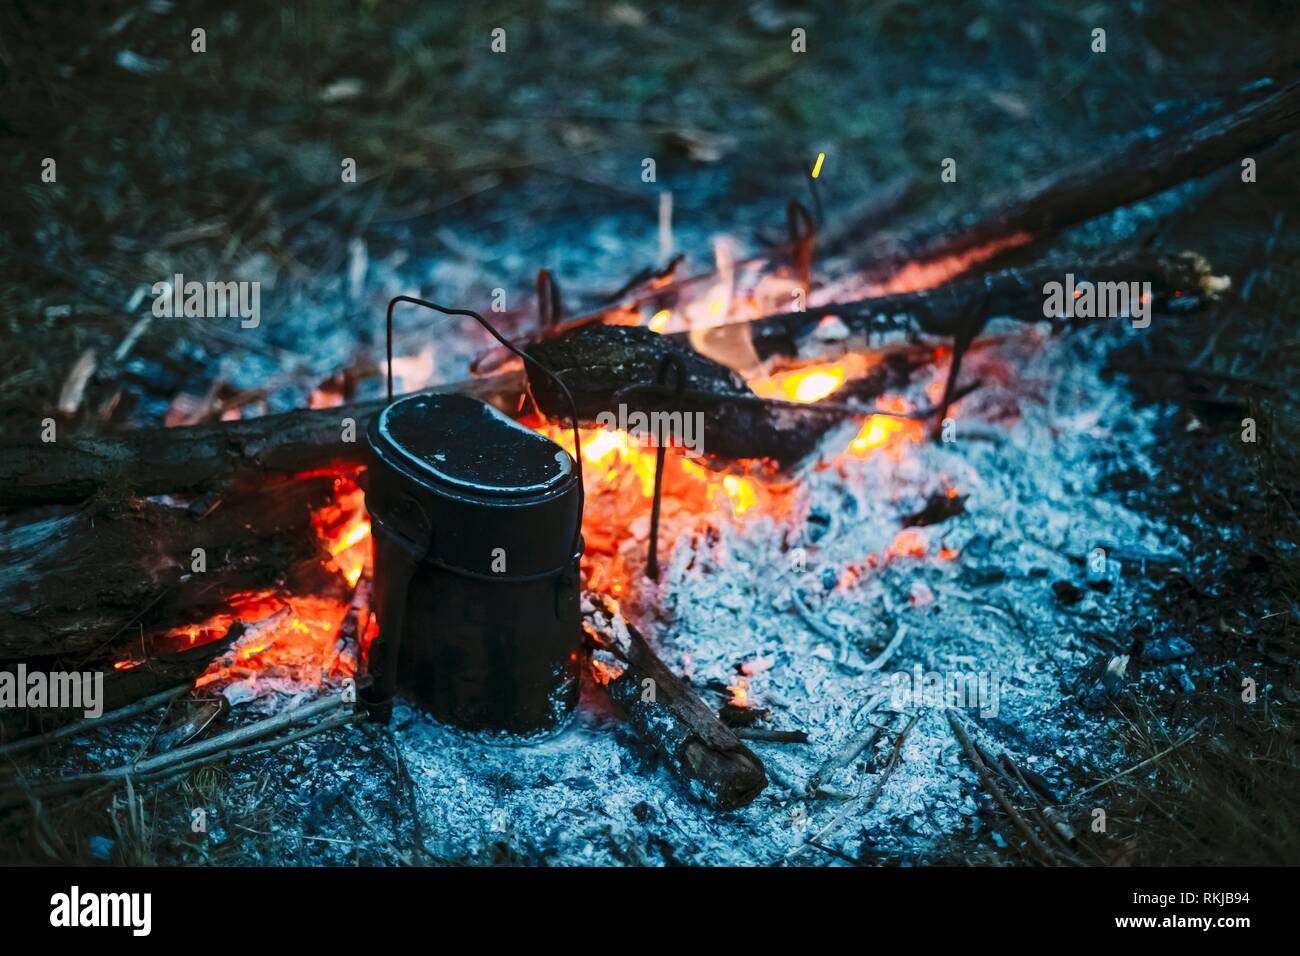 Food Is Cooked Over A Fire In An Old Vintage Retro Marching Pot Dixie. German Wehrmacht Infantry Soldier's Military Equipment Of World War II. - Stock Image